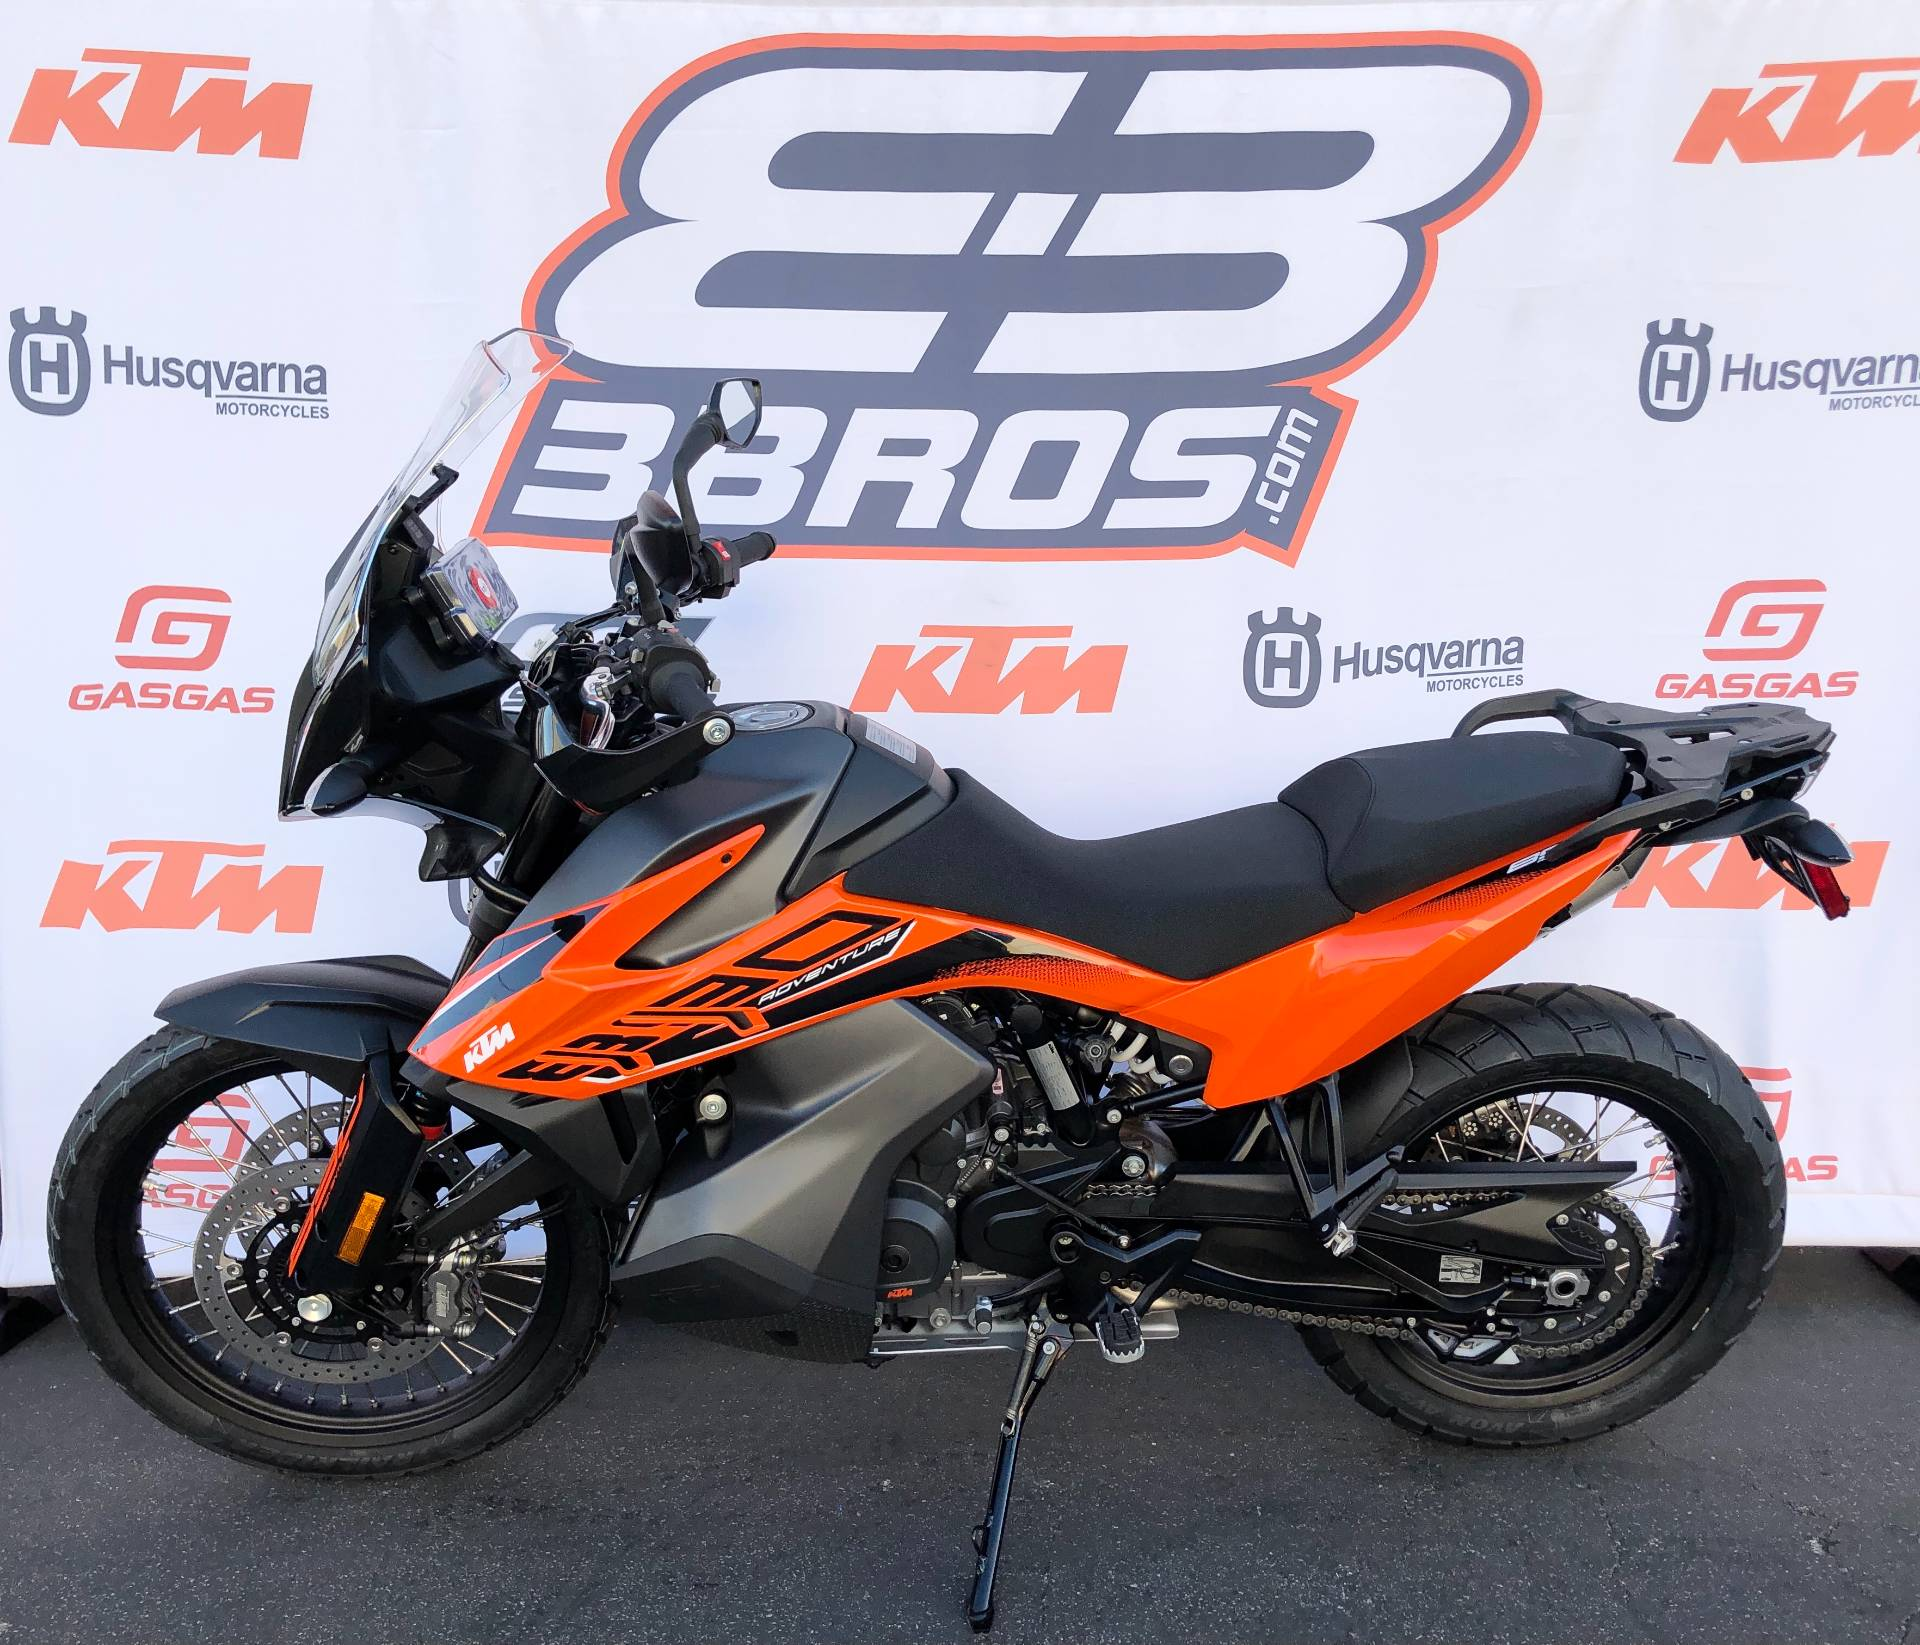 2021 KTM 890 Adventure in Costa Mesa, California - Photo 2